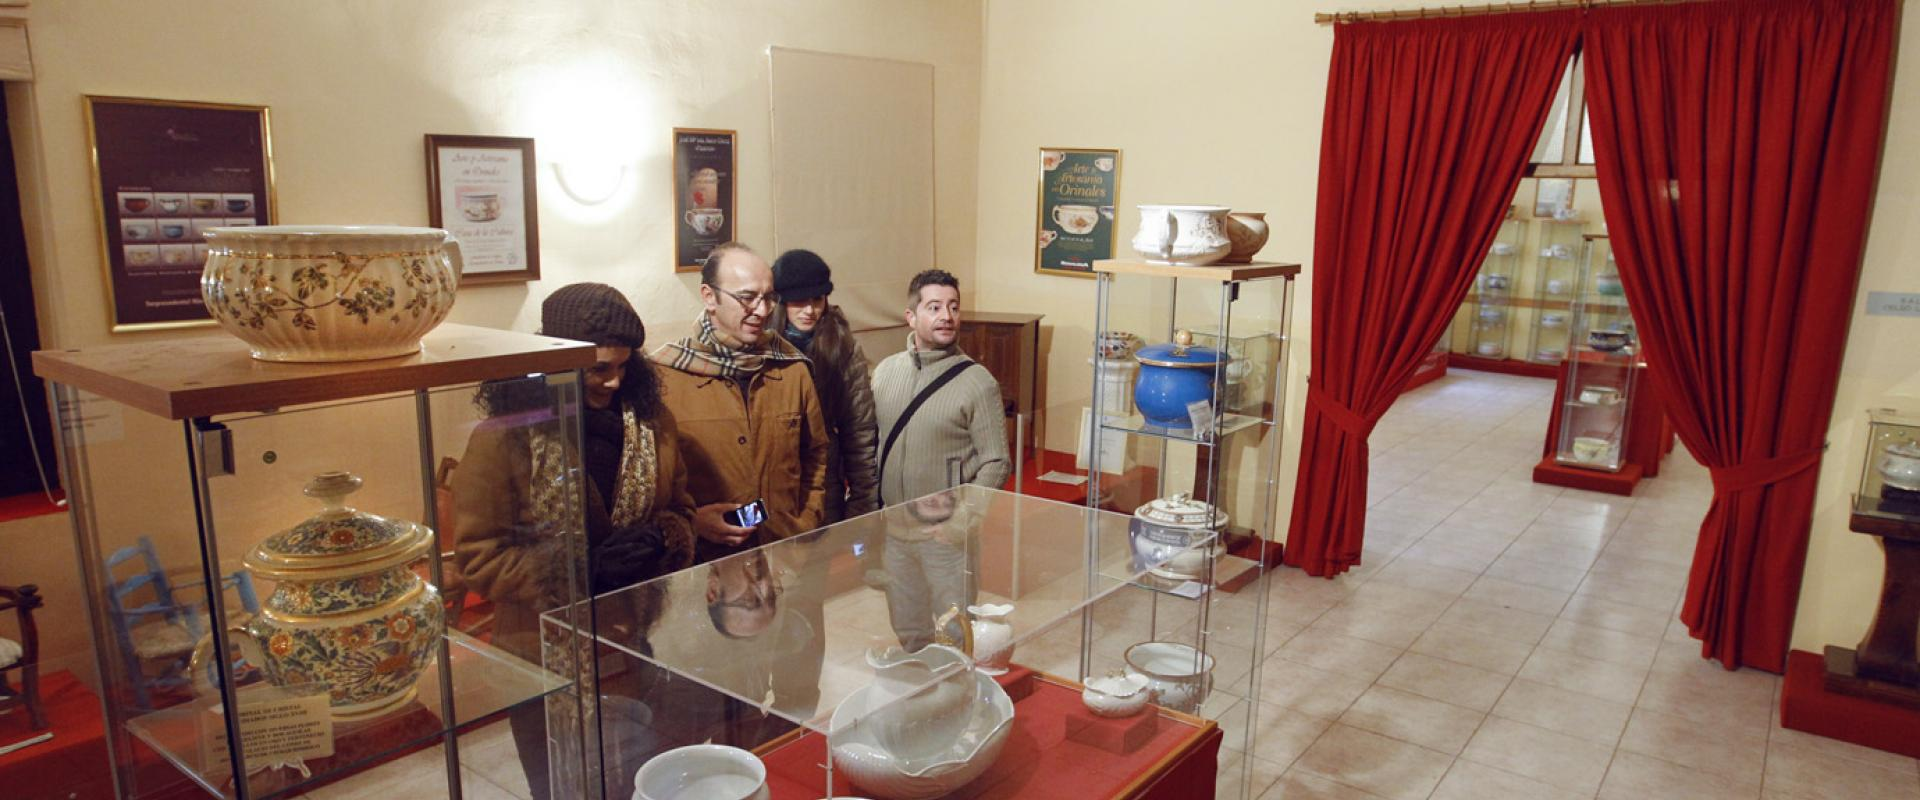 Museum of the chamber pot in Ciudad Rodrigo